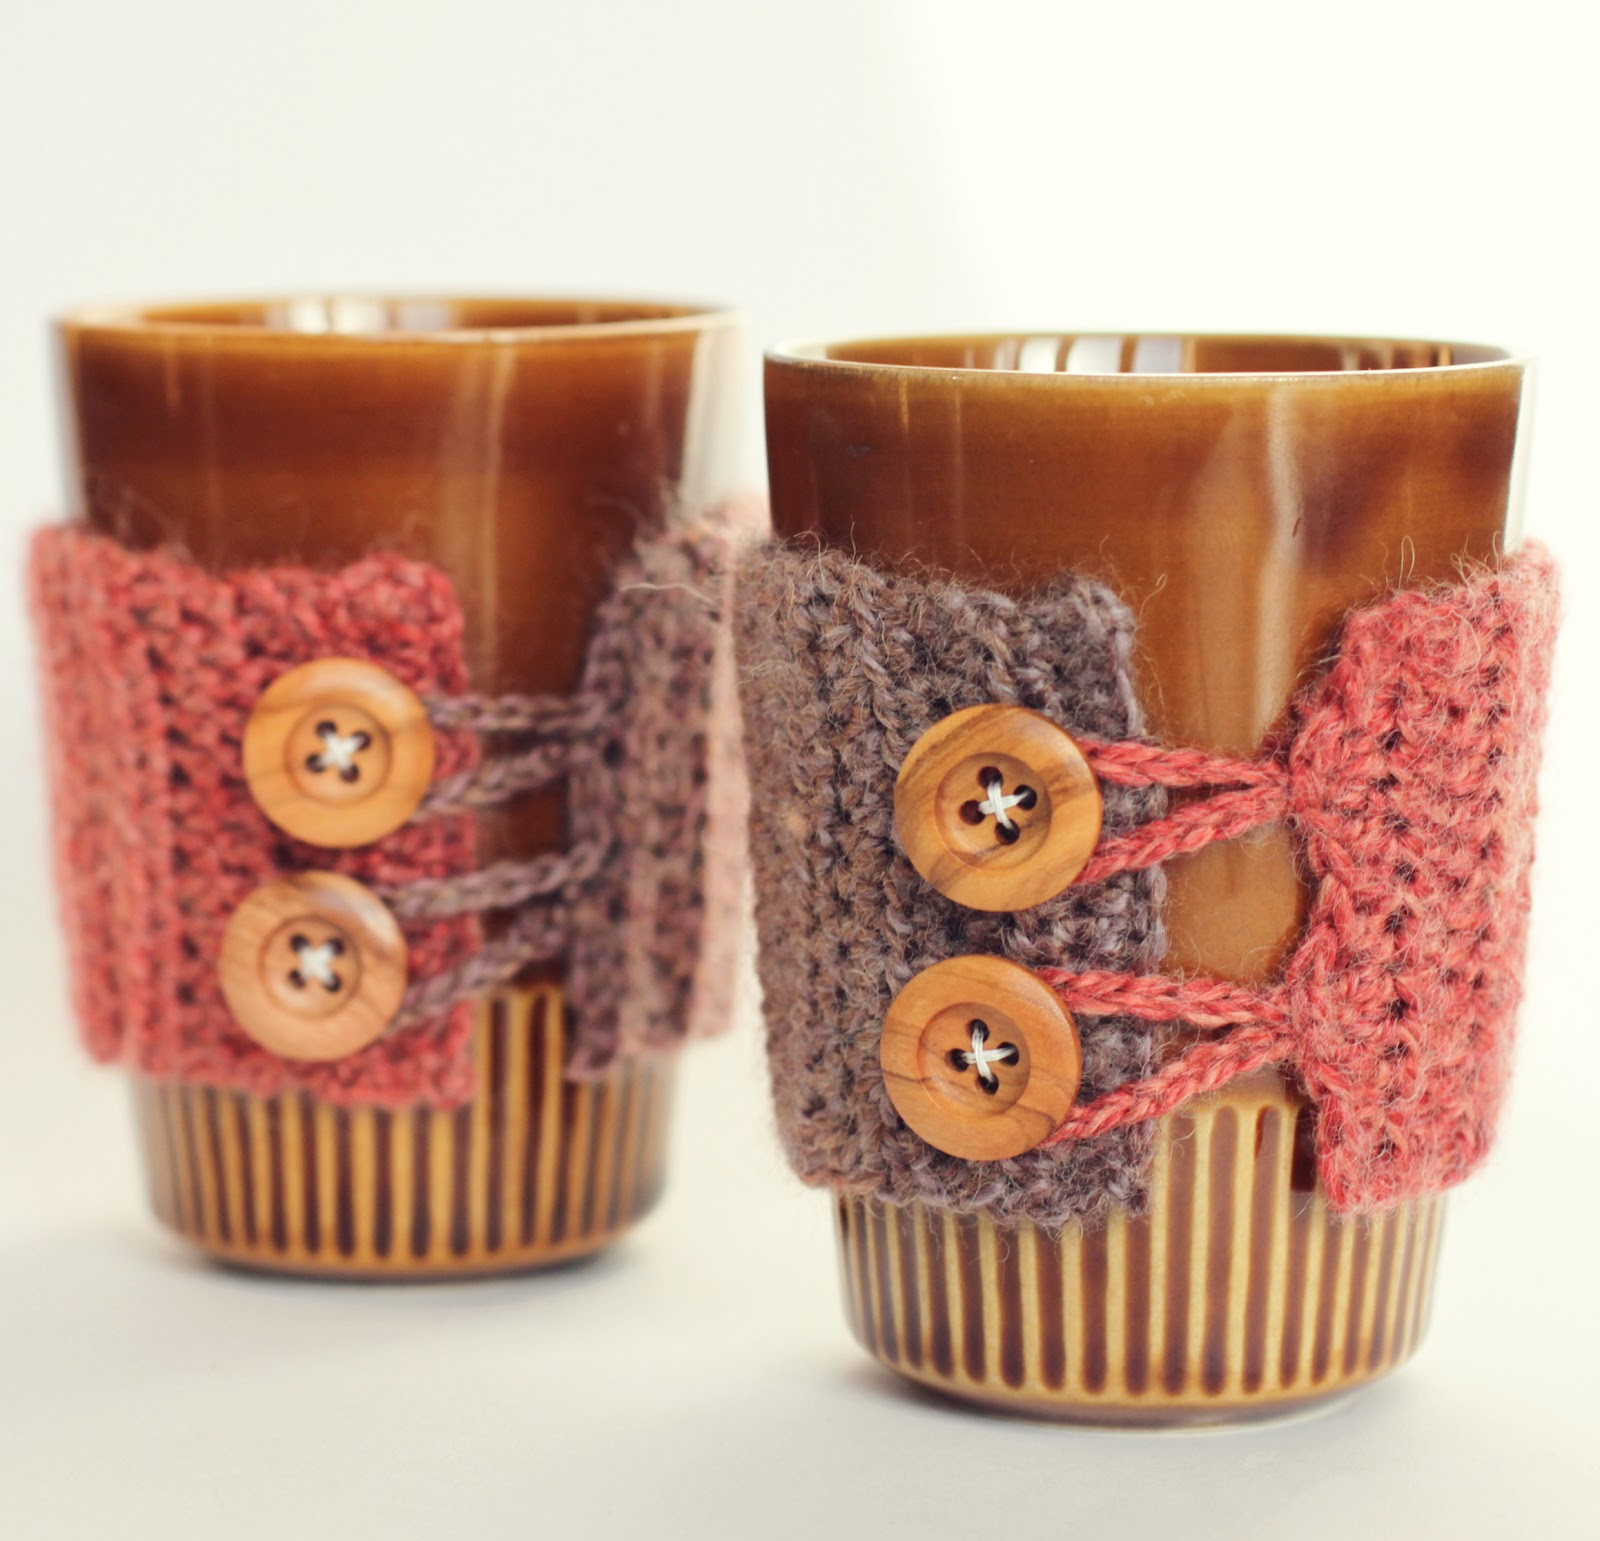 Crochet Coffee Cup Cozy Lovely L♥valizious Mug Cozy Tutorial Of Crochet Coffee Cup Cozy Fresh 20 Cool Crochet Coffee Cozy Ideas & Tutorials Hative